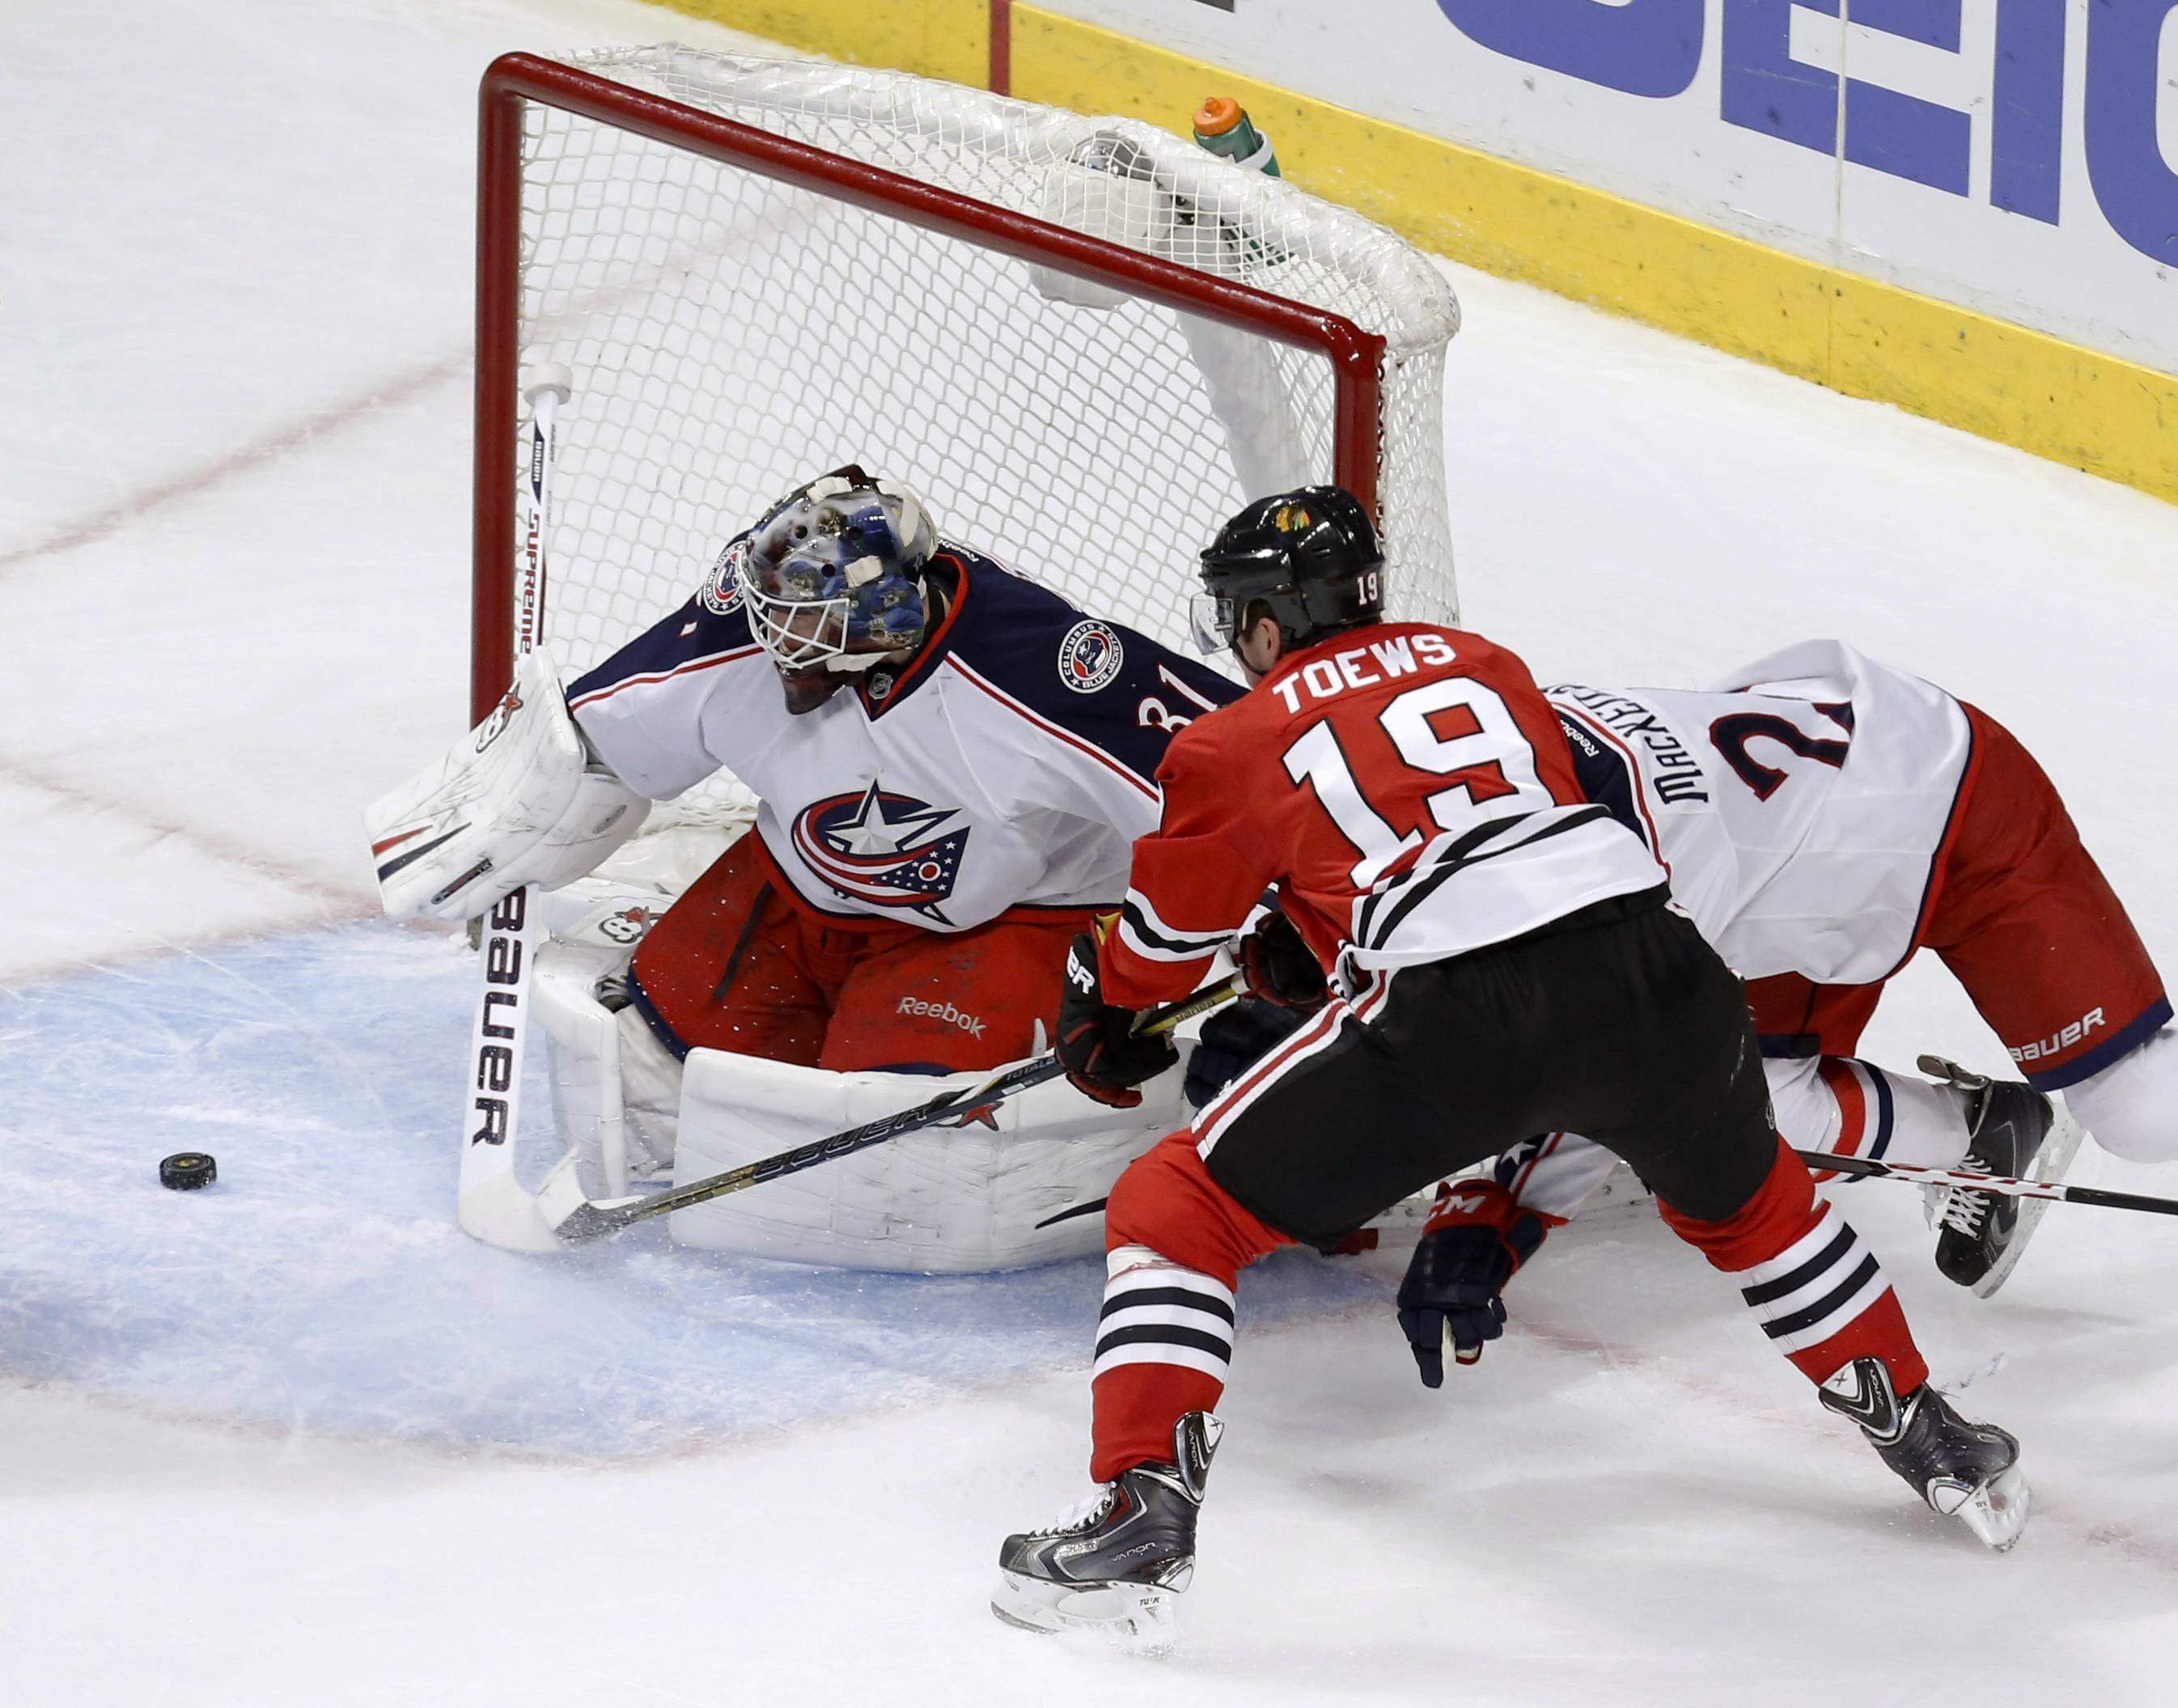 Columbus Blue Jackets goalie Curtis McElhinney makes Blackhawks center Jonathan Toews shoot wide of the net as Derek MacKenzie also defends during the second period Thursday in Chicago.